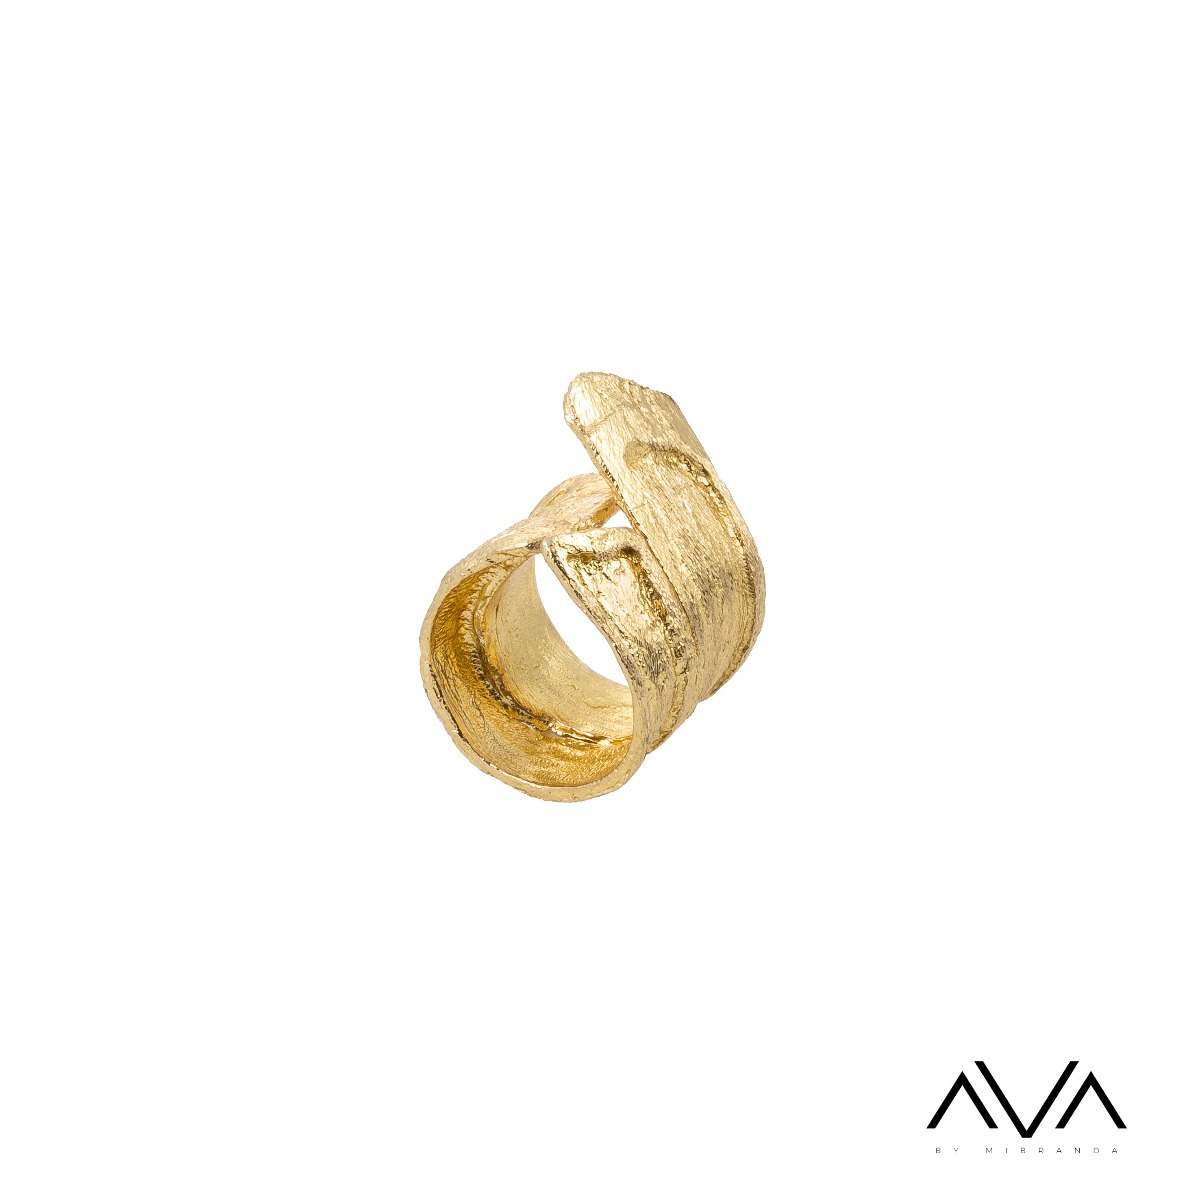 "Anillo ""ANEMOS"" AVA by Mibranda, color oro."